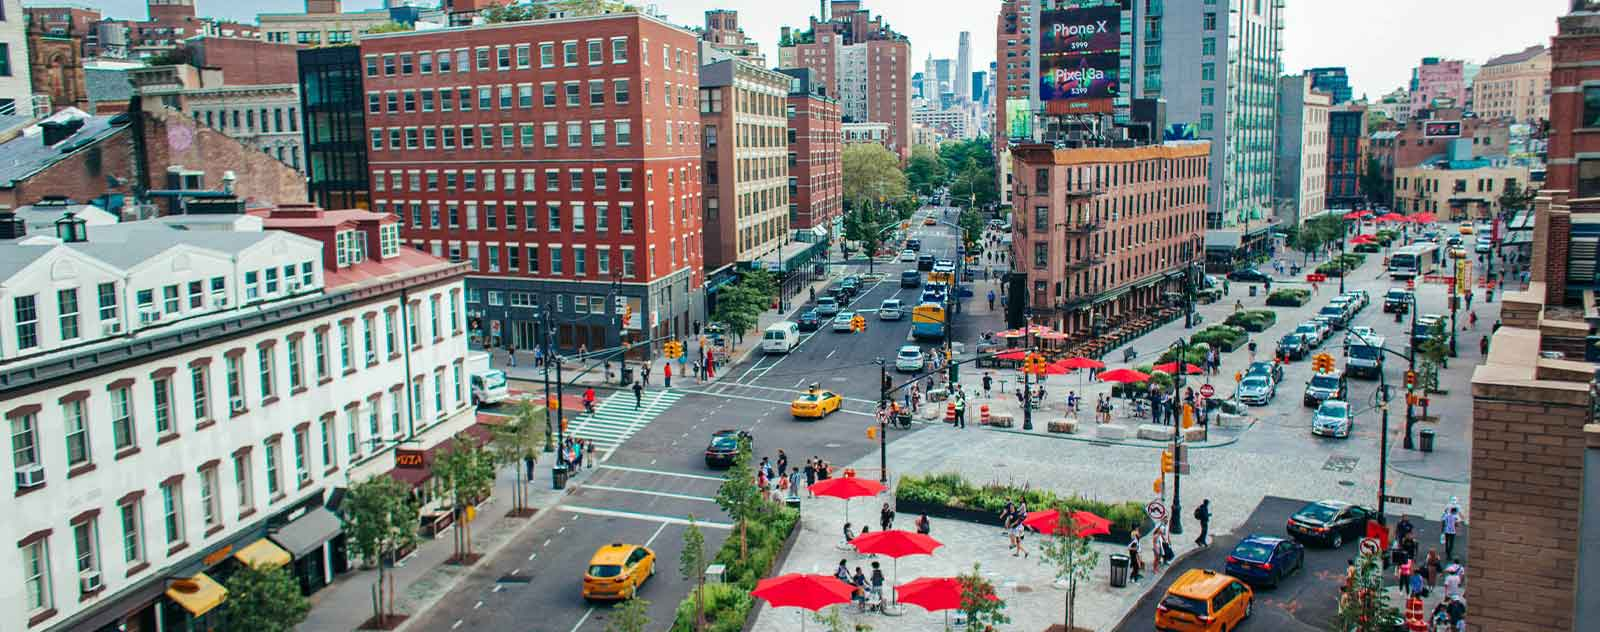 meatpacking district ny